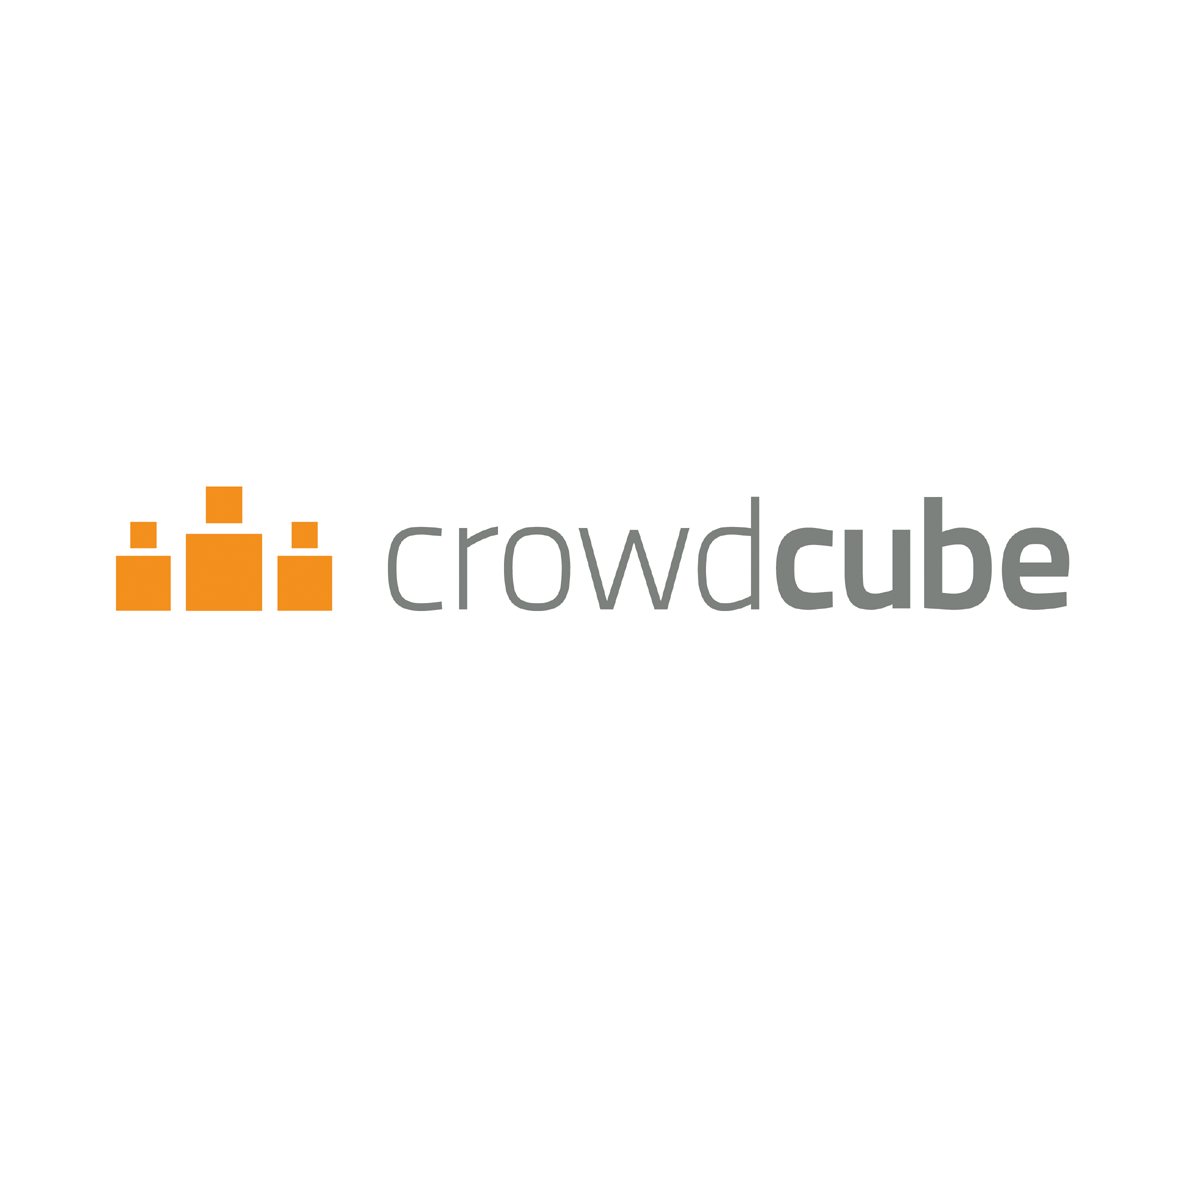 Why we have chosen to crowdfund with Crowdcube?